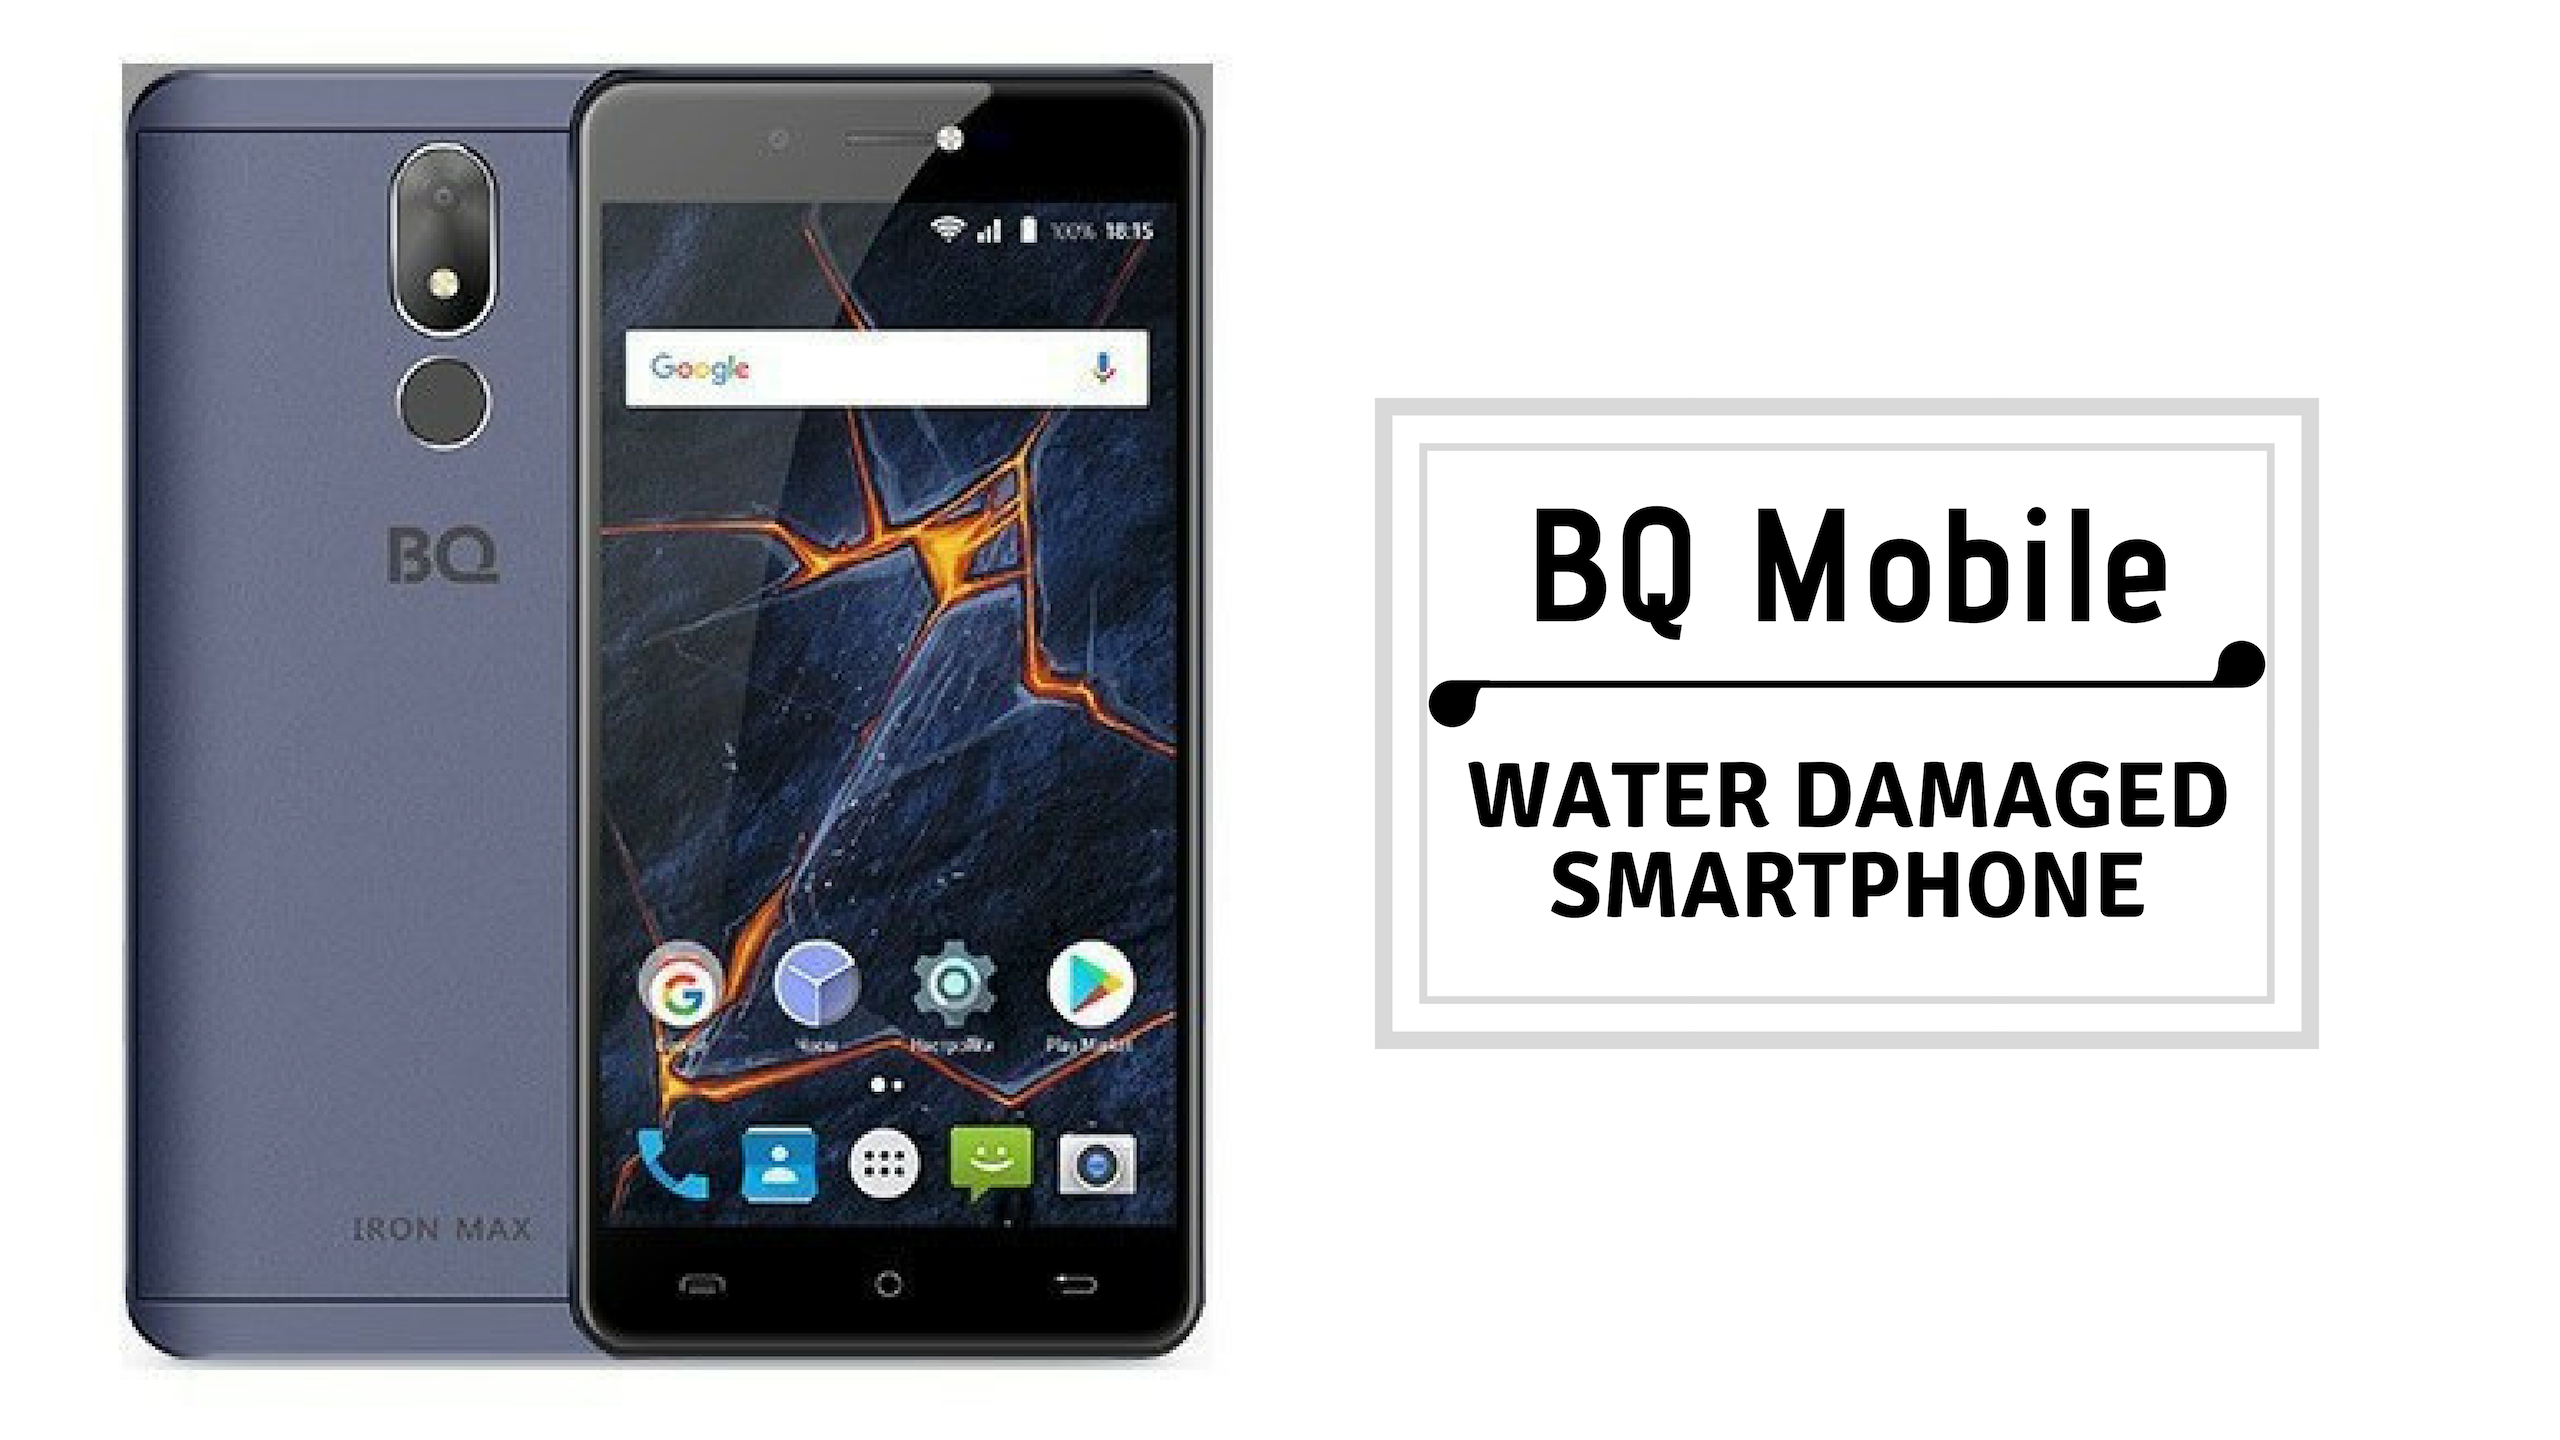 How To Fix BQ Mobile Water Damaged Smartphone [Quick Guide]